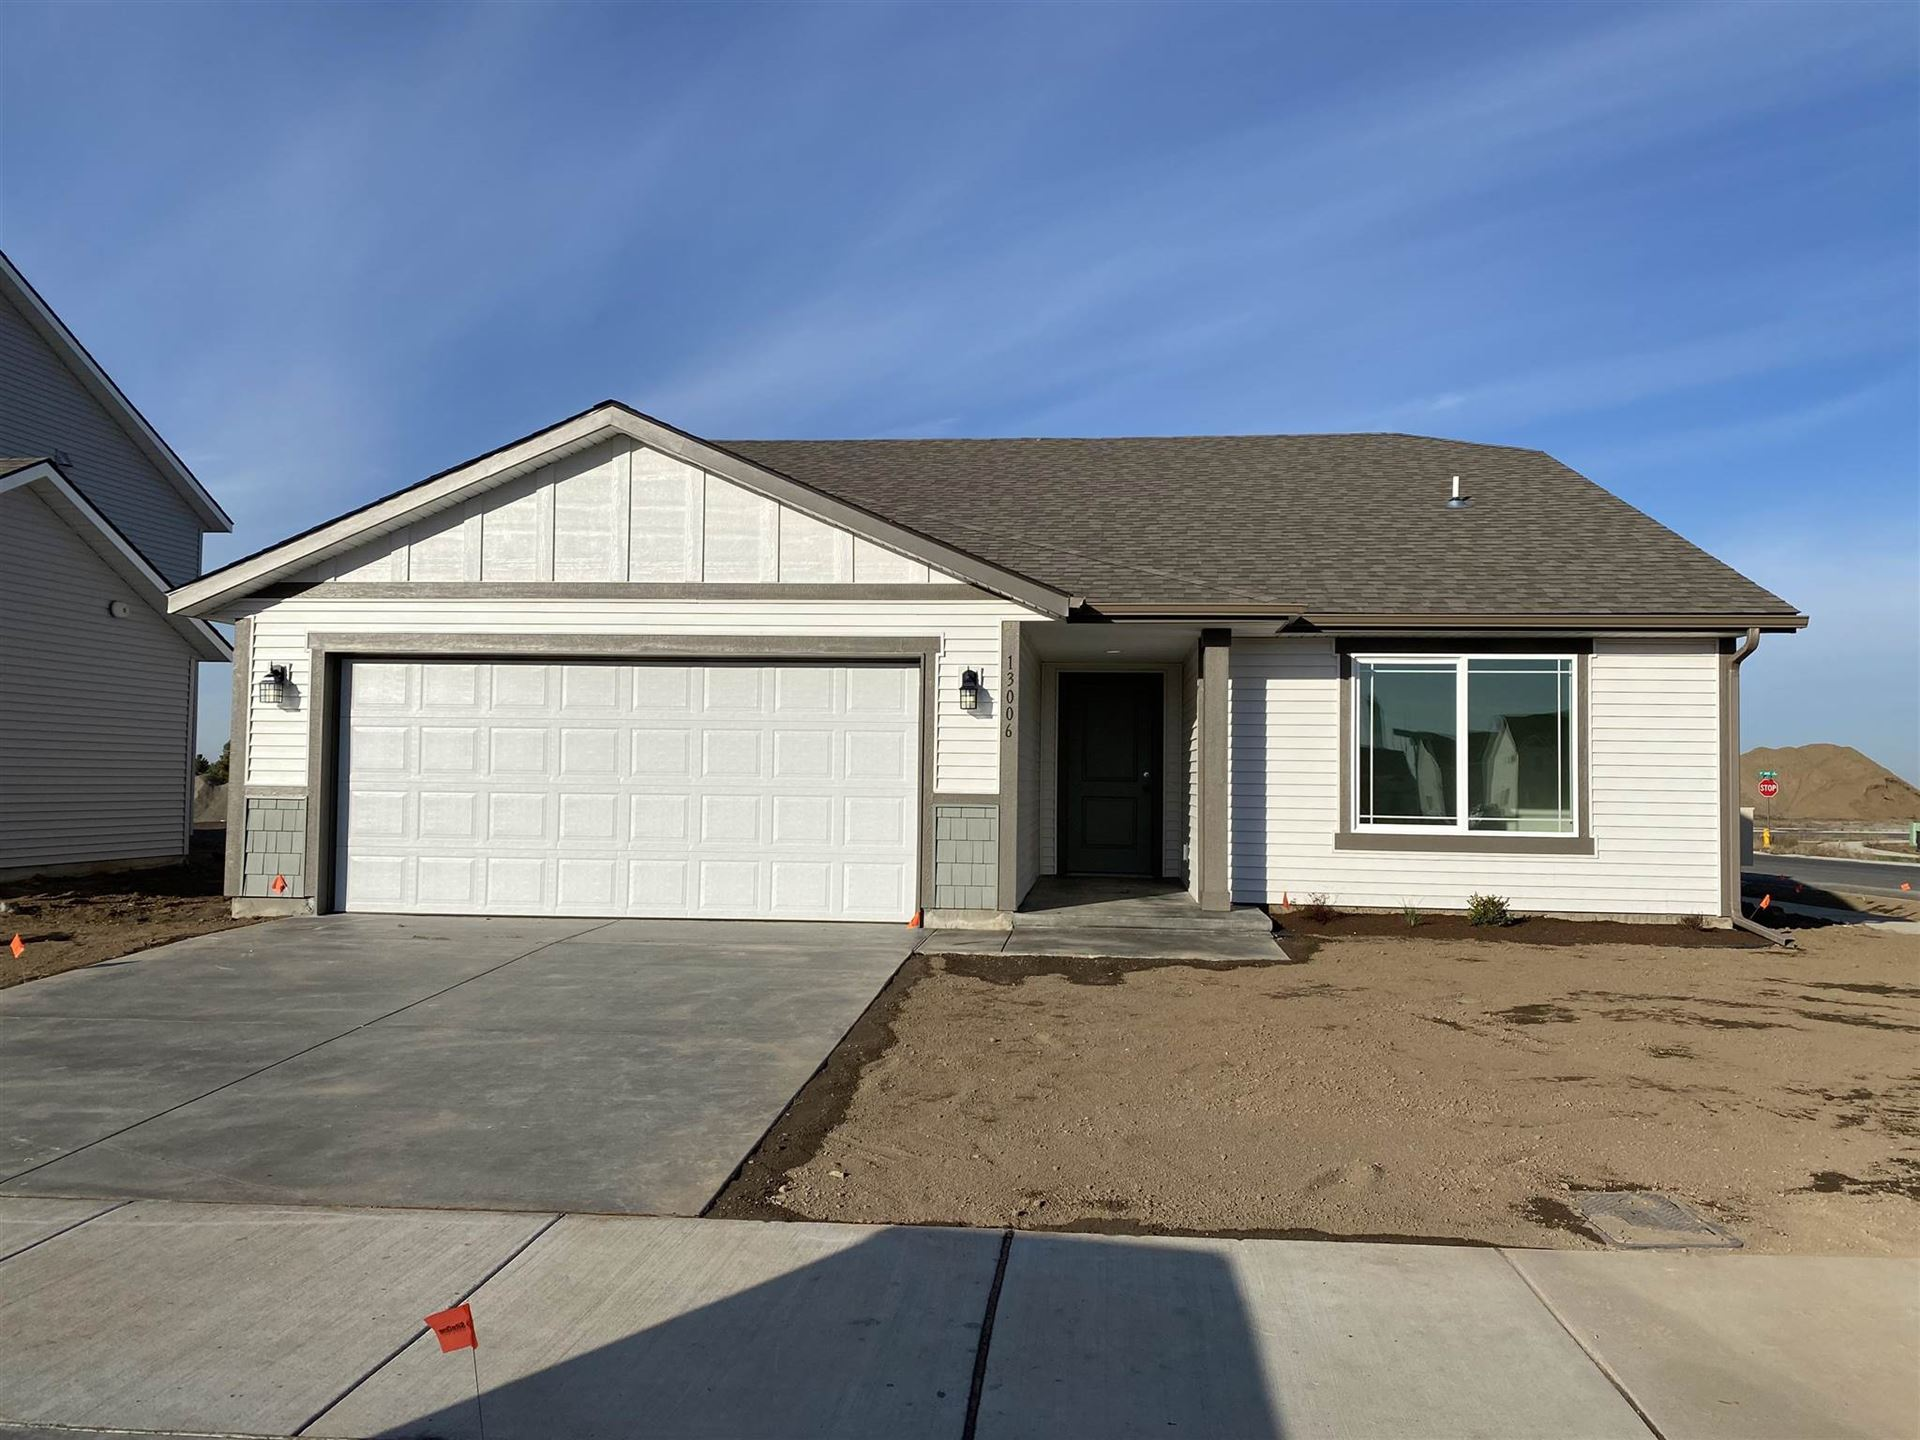 13006 W Pacific Ave, Airway Heights, WA 99001 - #: 202117706